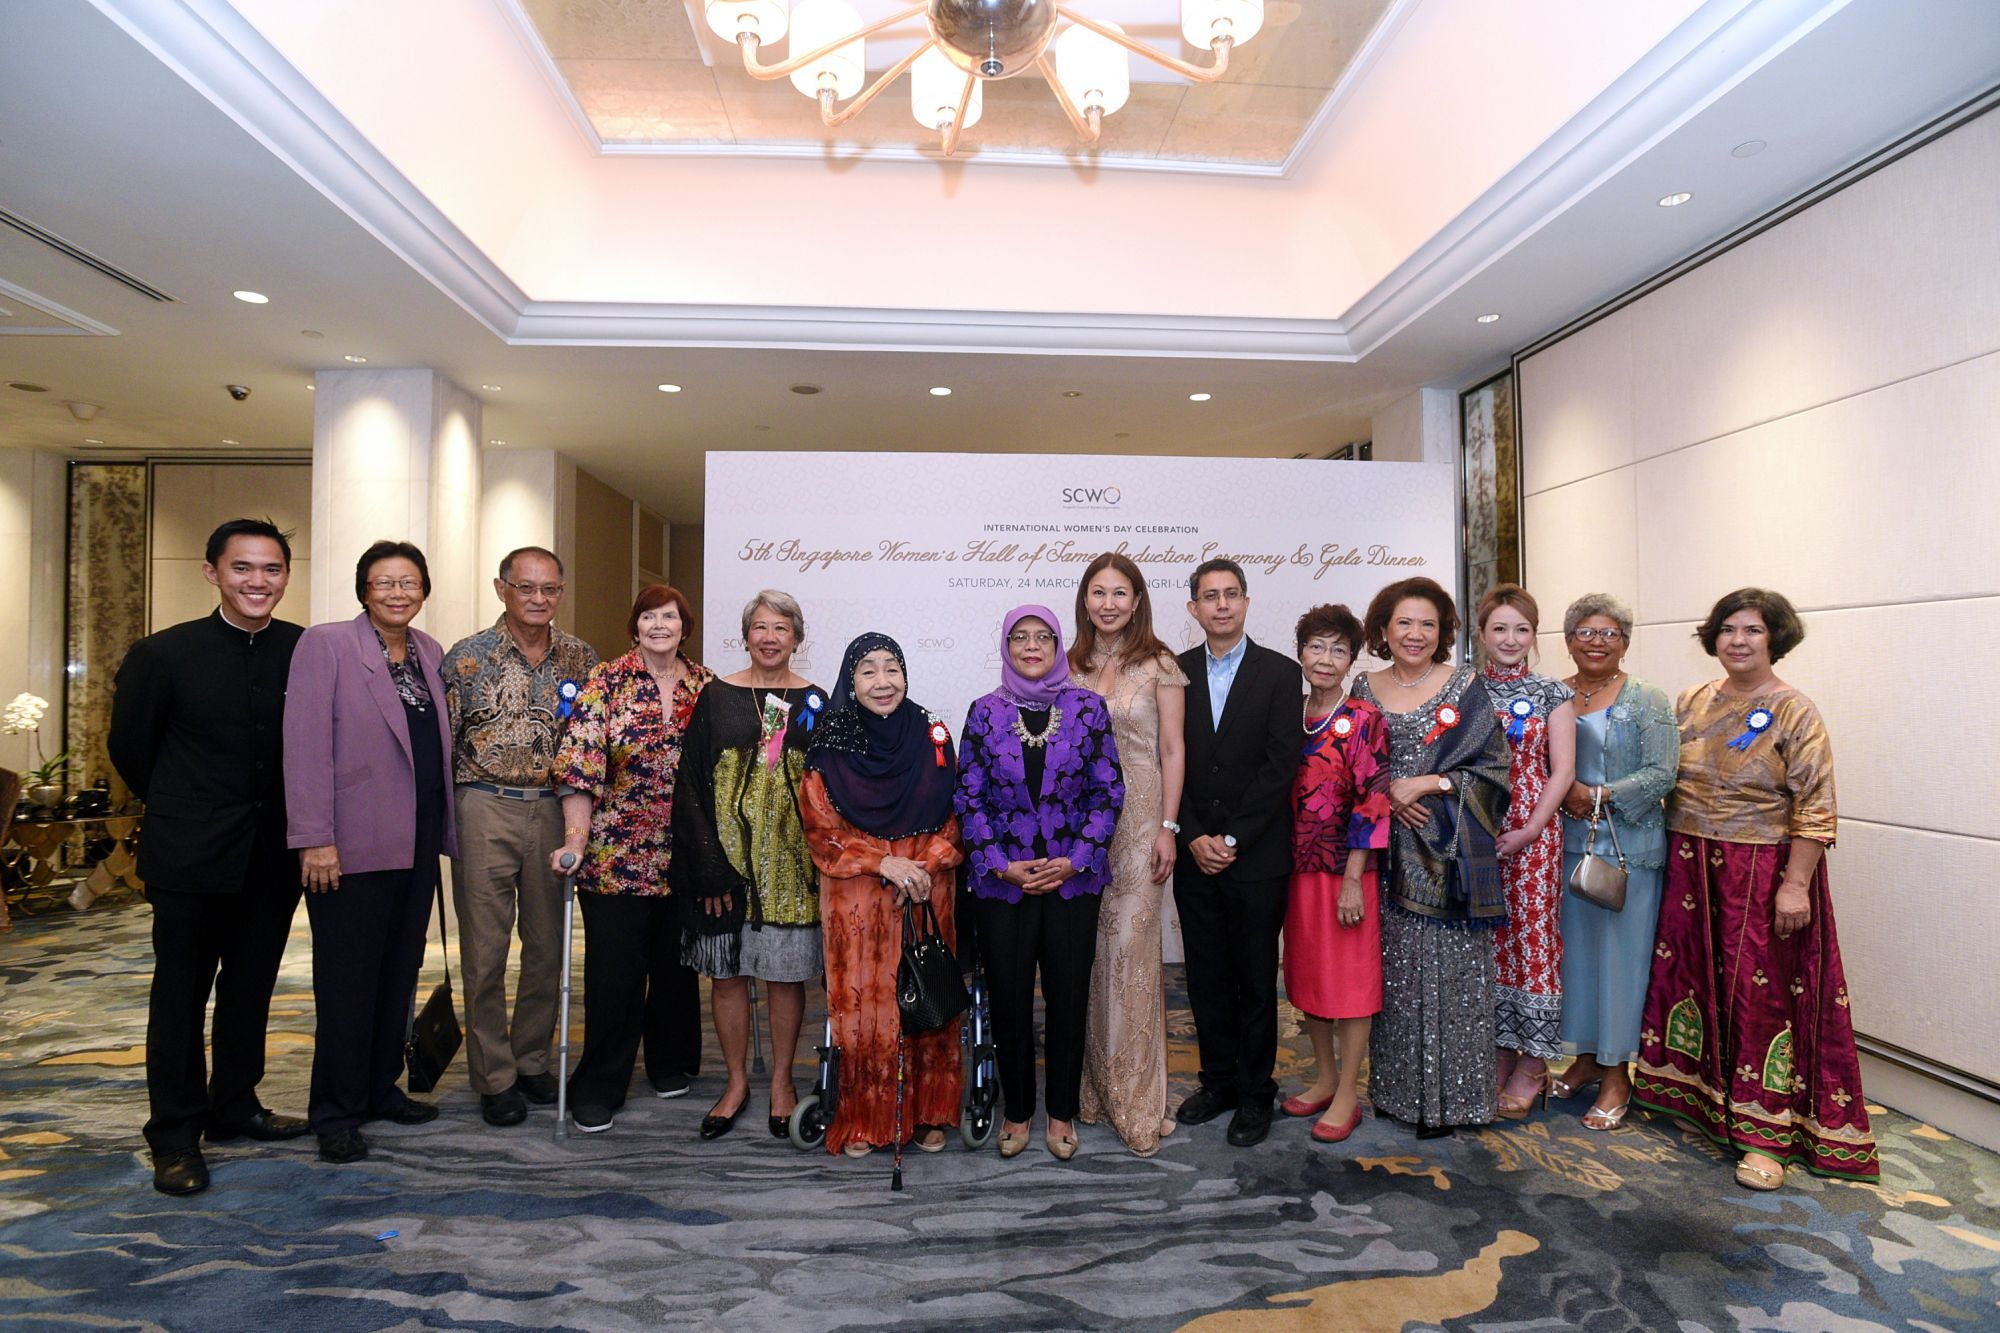 President Halimah Yacob with the 2018 honourees of the Singapore Women's Hall of Fame